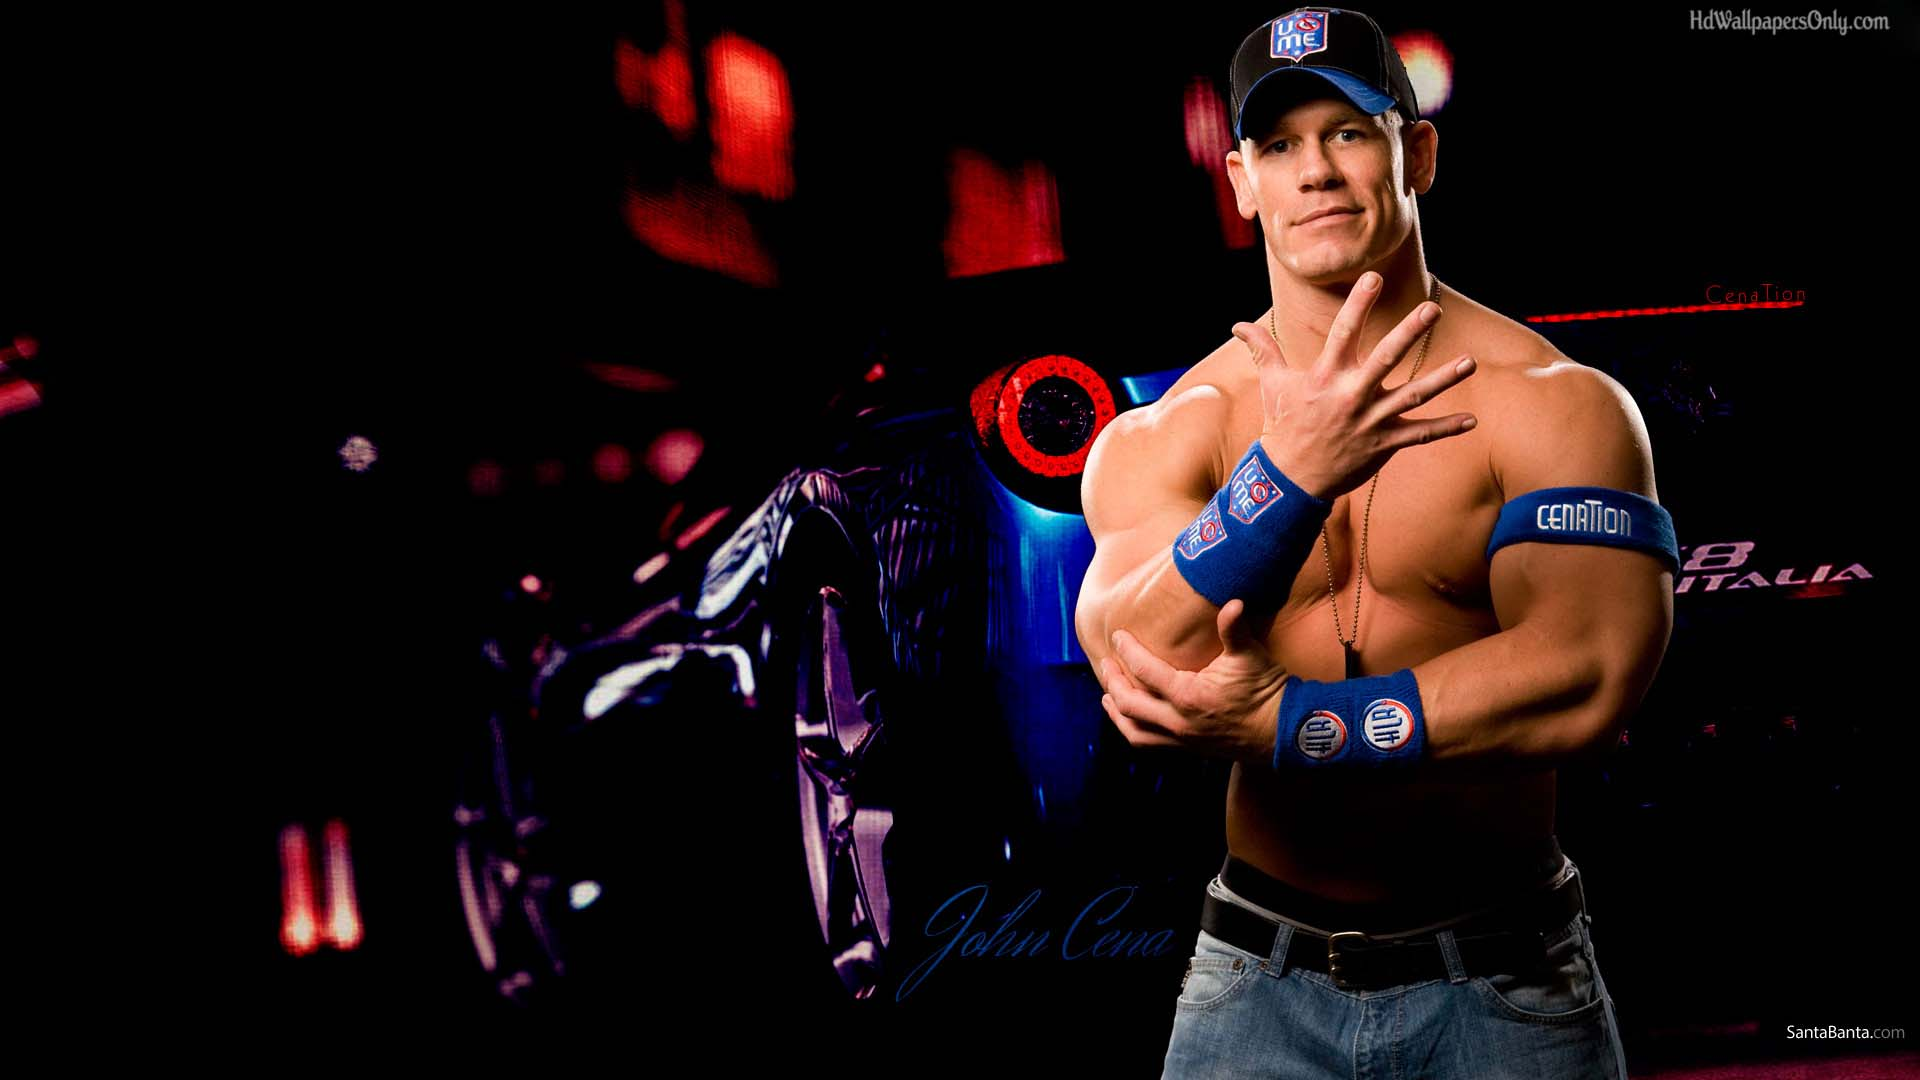 Wallpapers Of John Cena